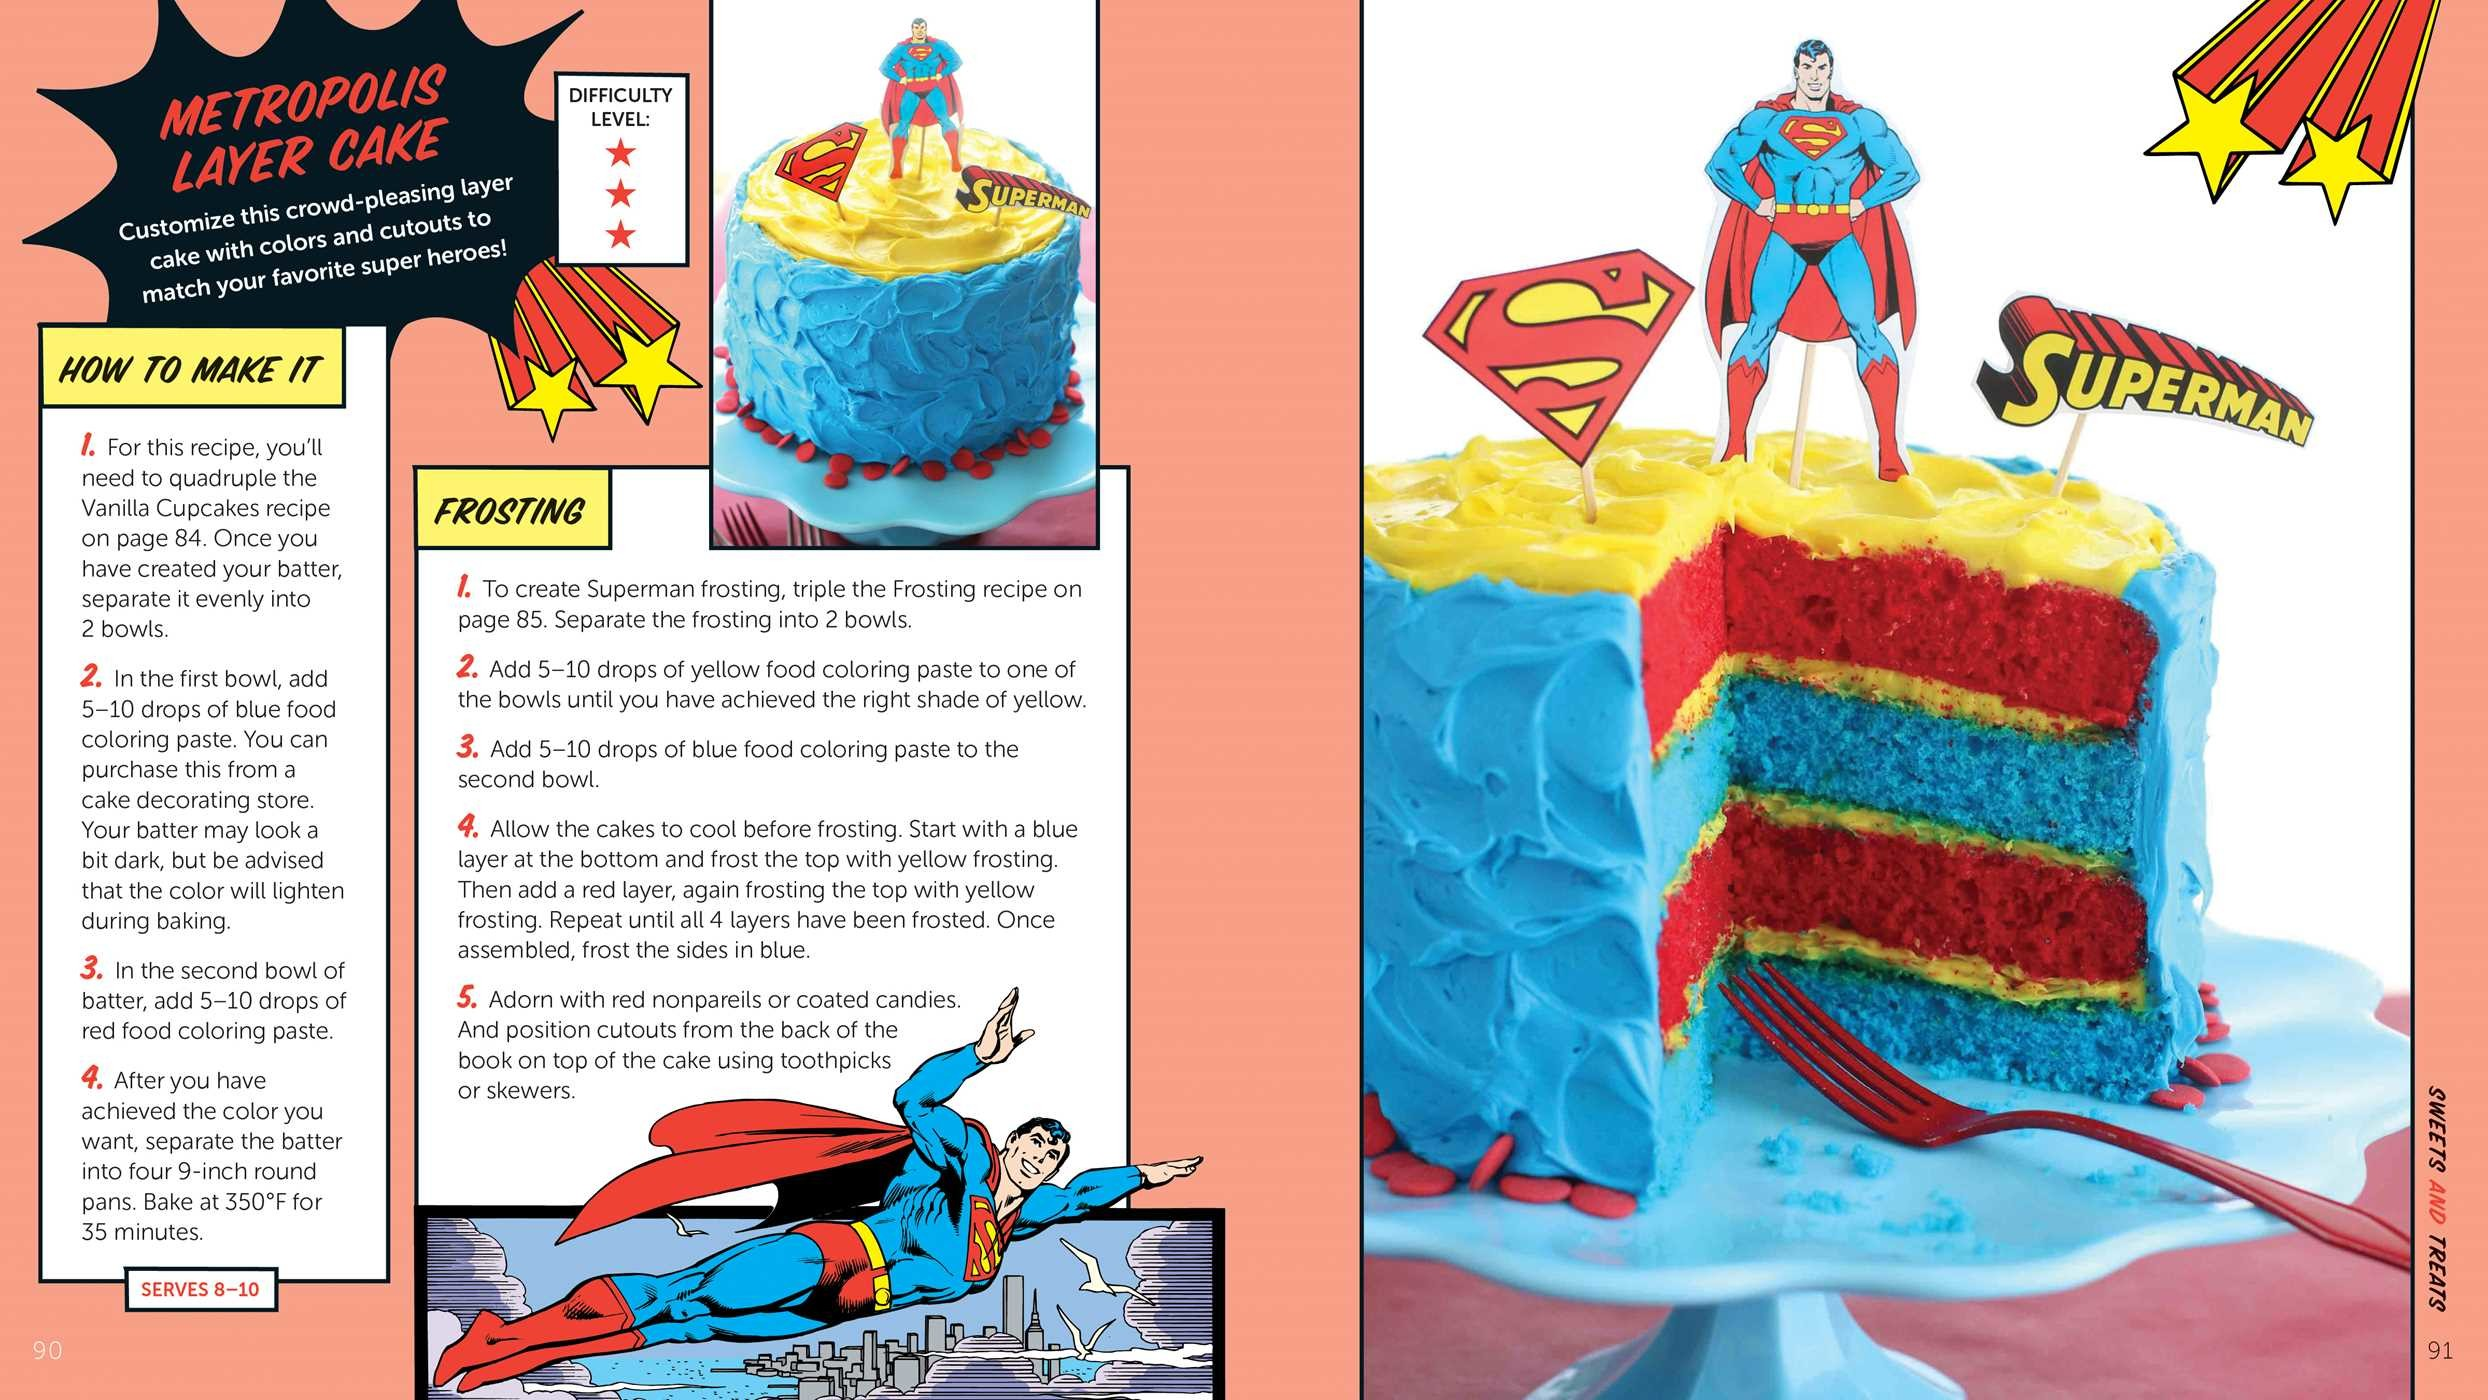 The official dc super hero cookbook 9781935703914.in09